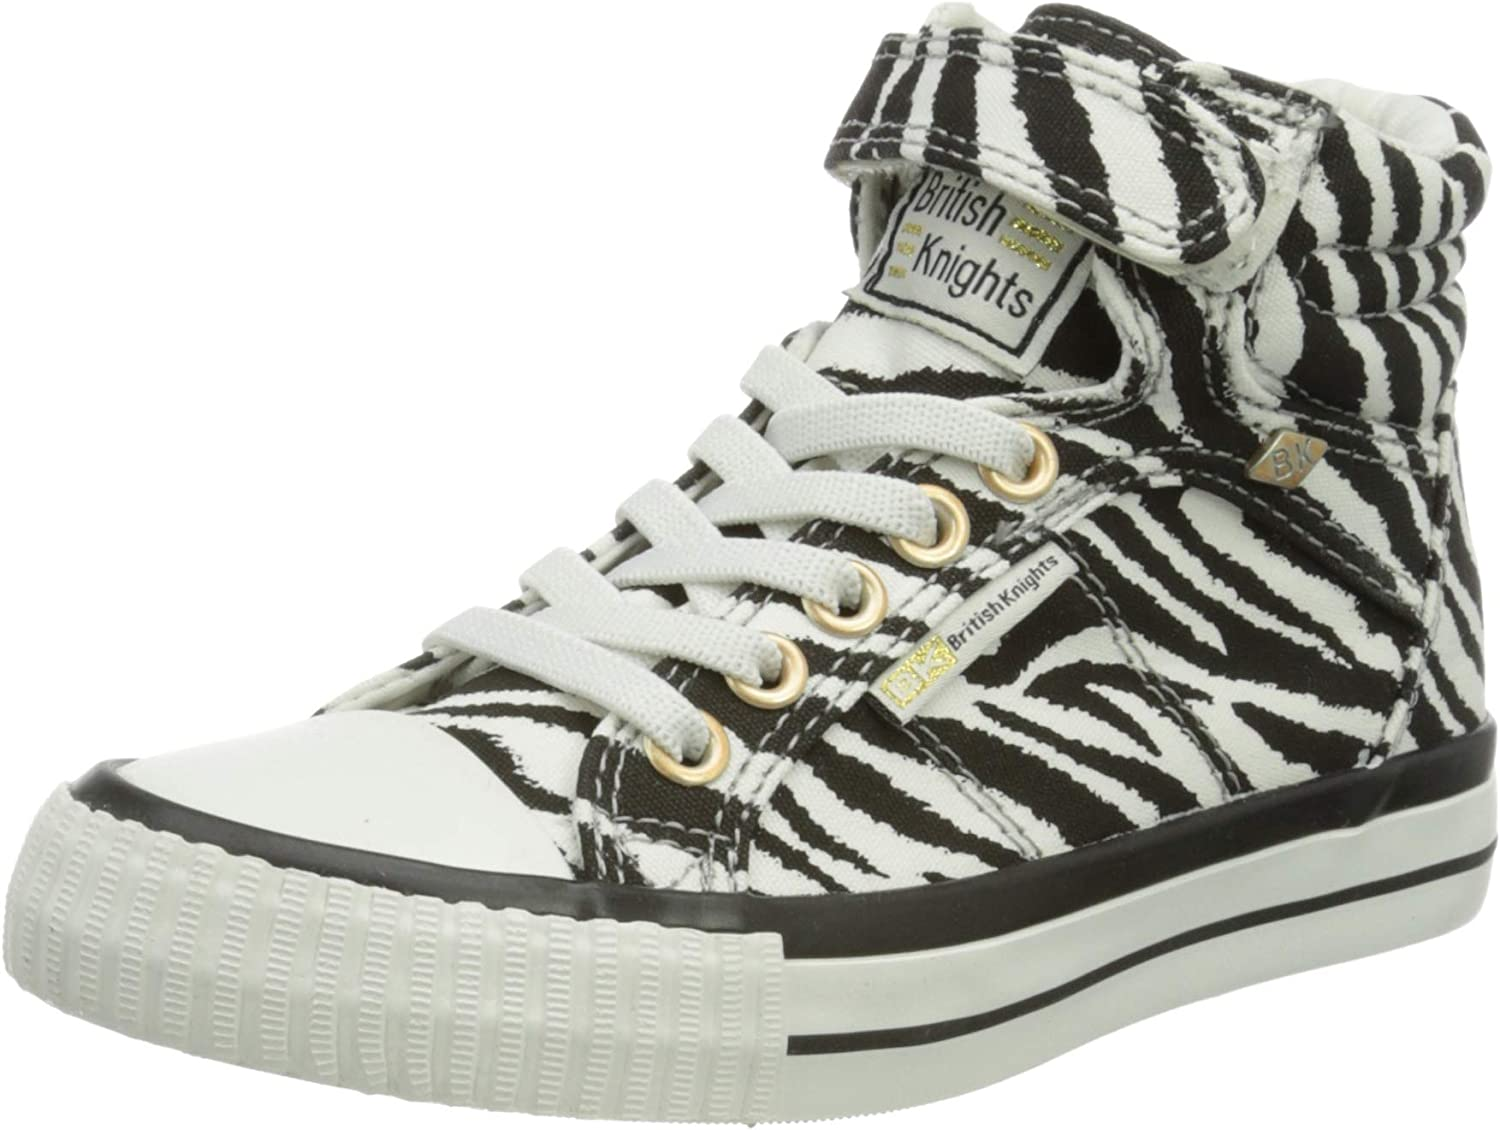 British Knights Women's Low-Top Sneakers Max Sale item 76% OFF